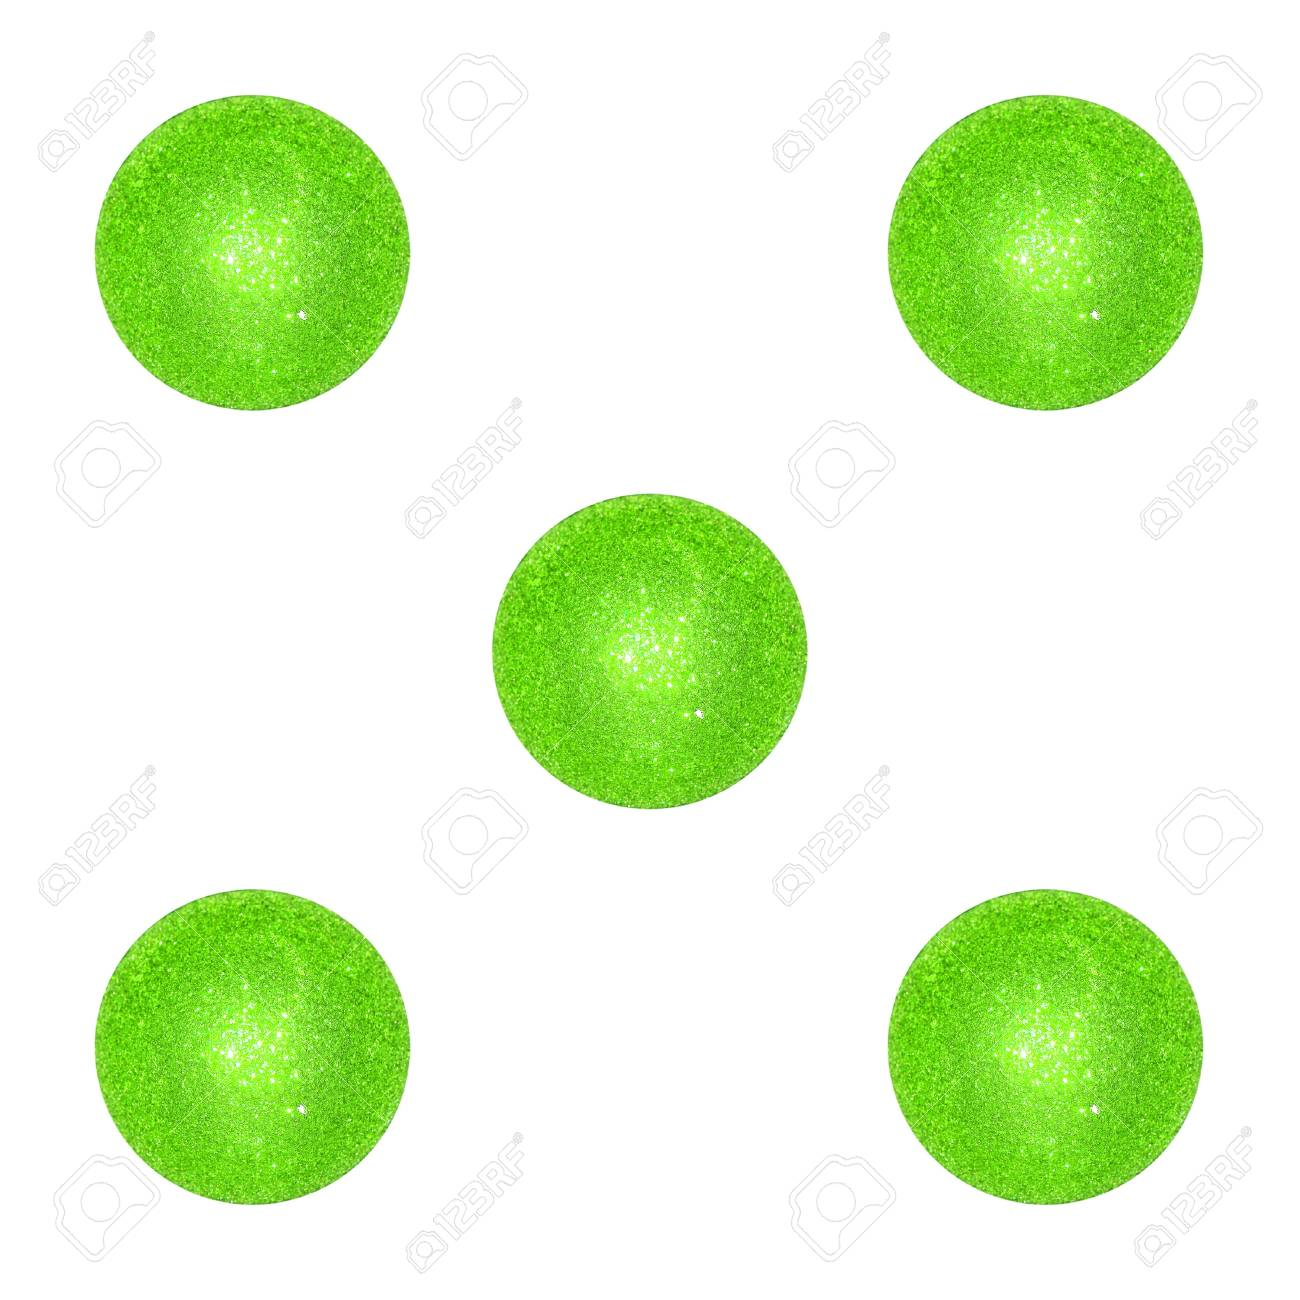 Five, dice, game, playing, light green, dice Stock Photo - 12998363